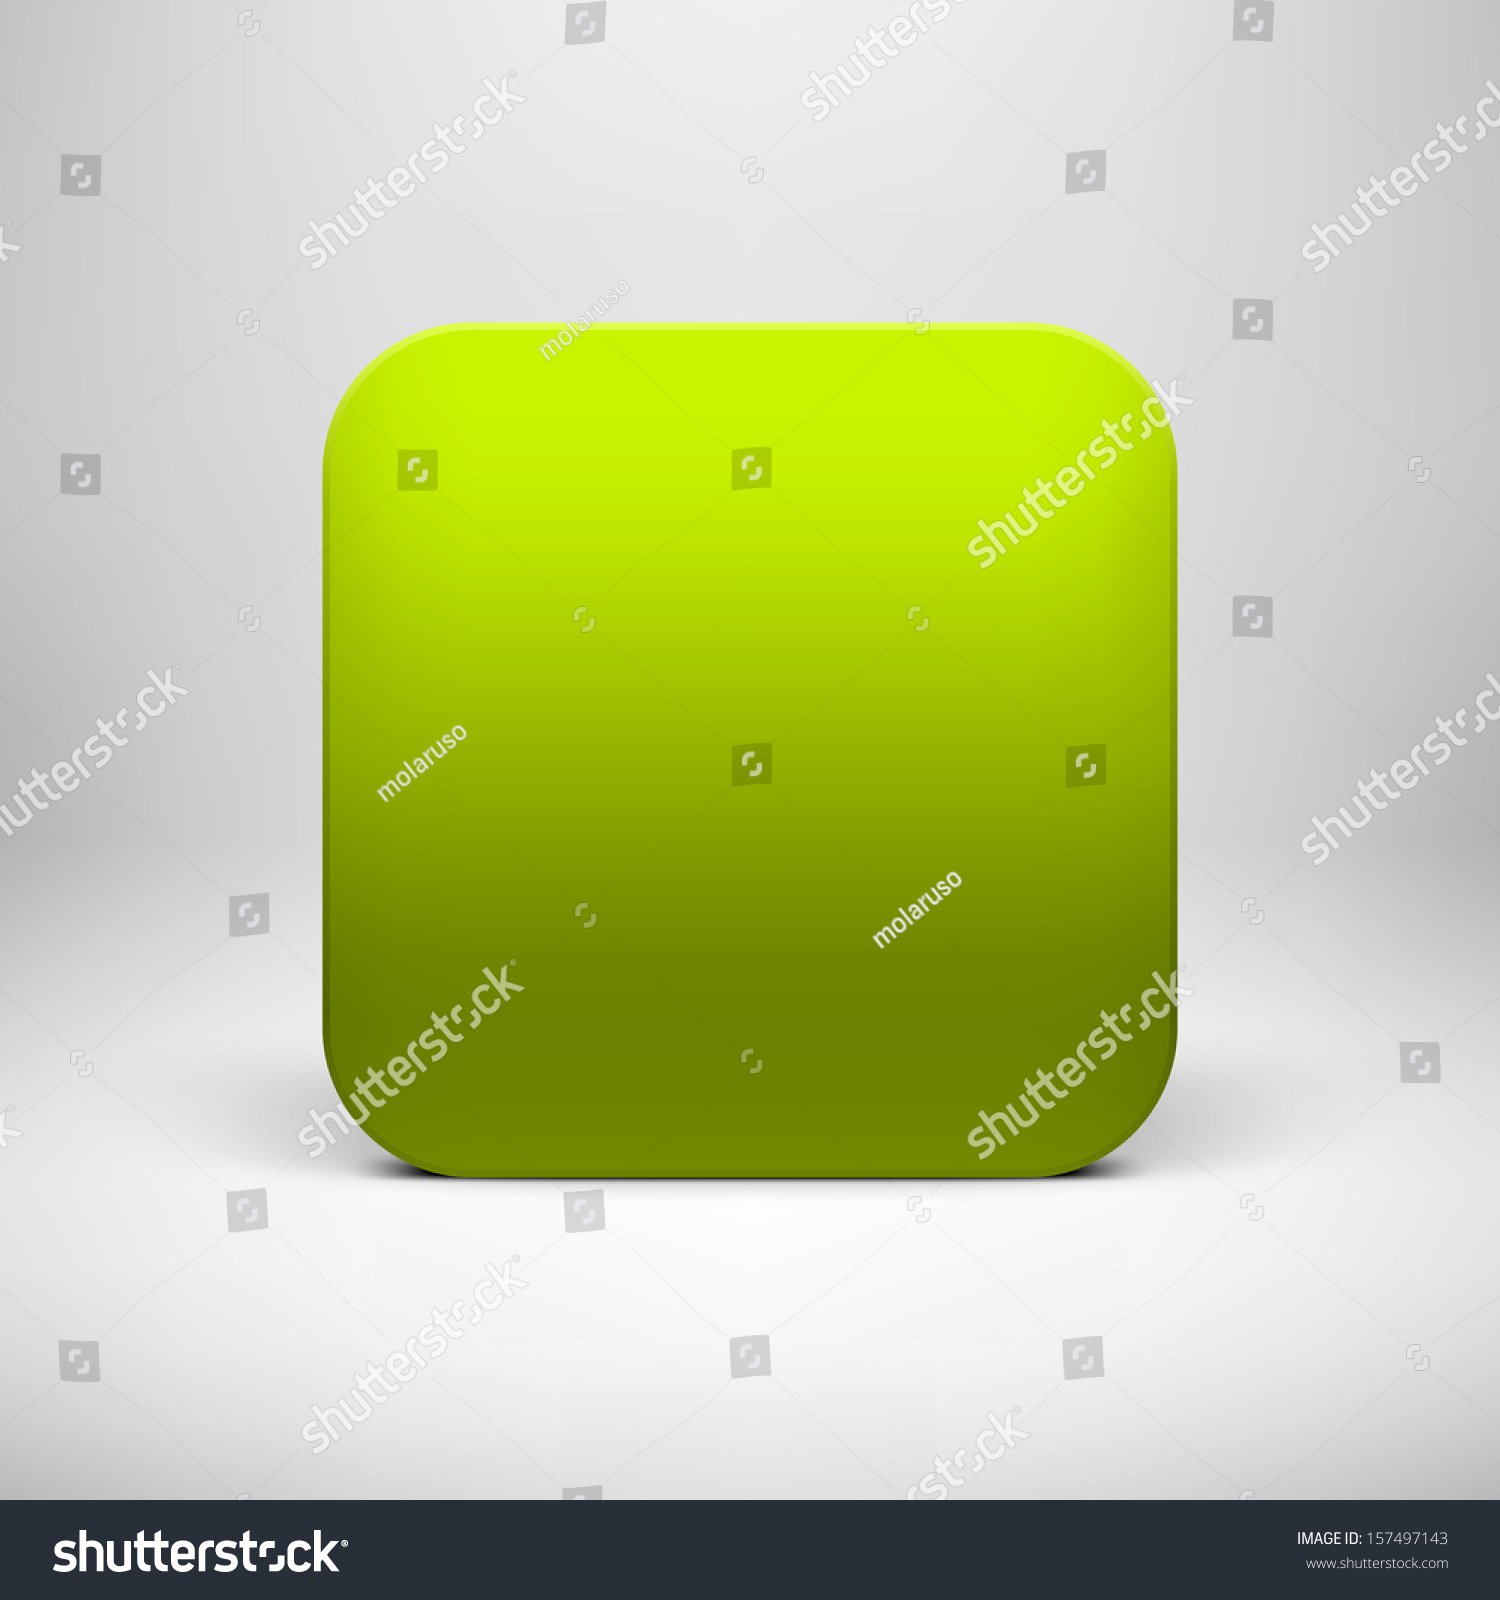 Blank Calendar Icon Green : Technology green blank app icon button template with